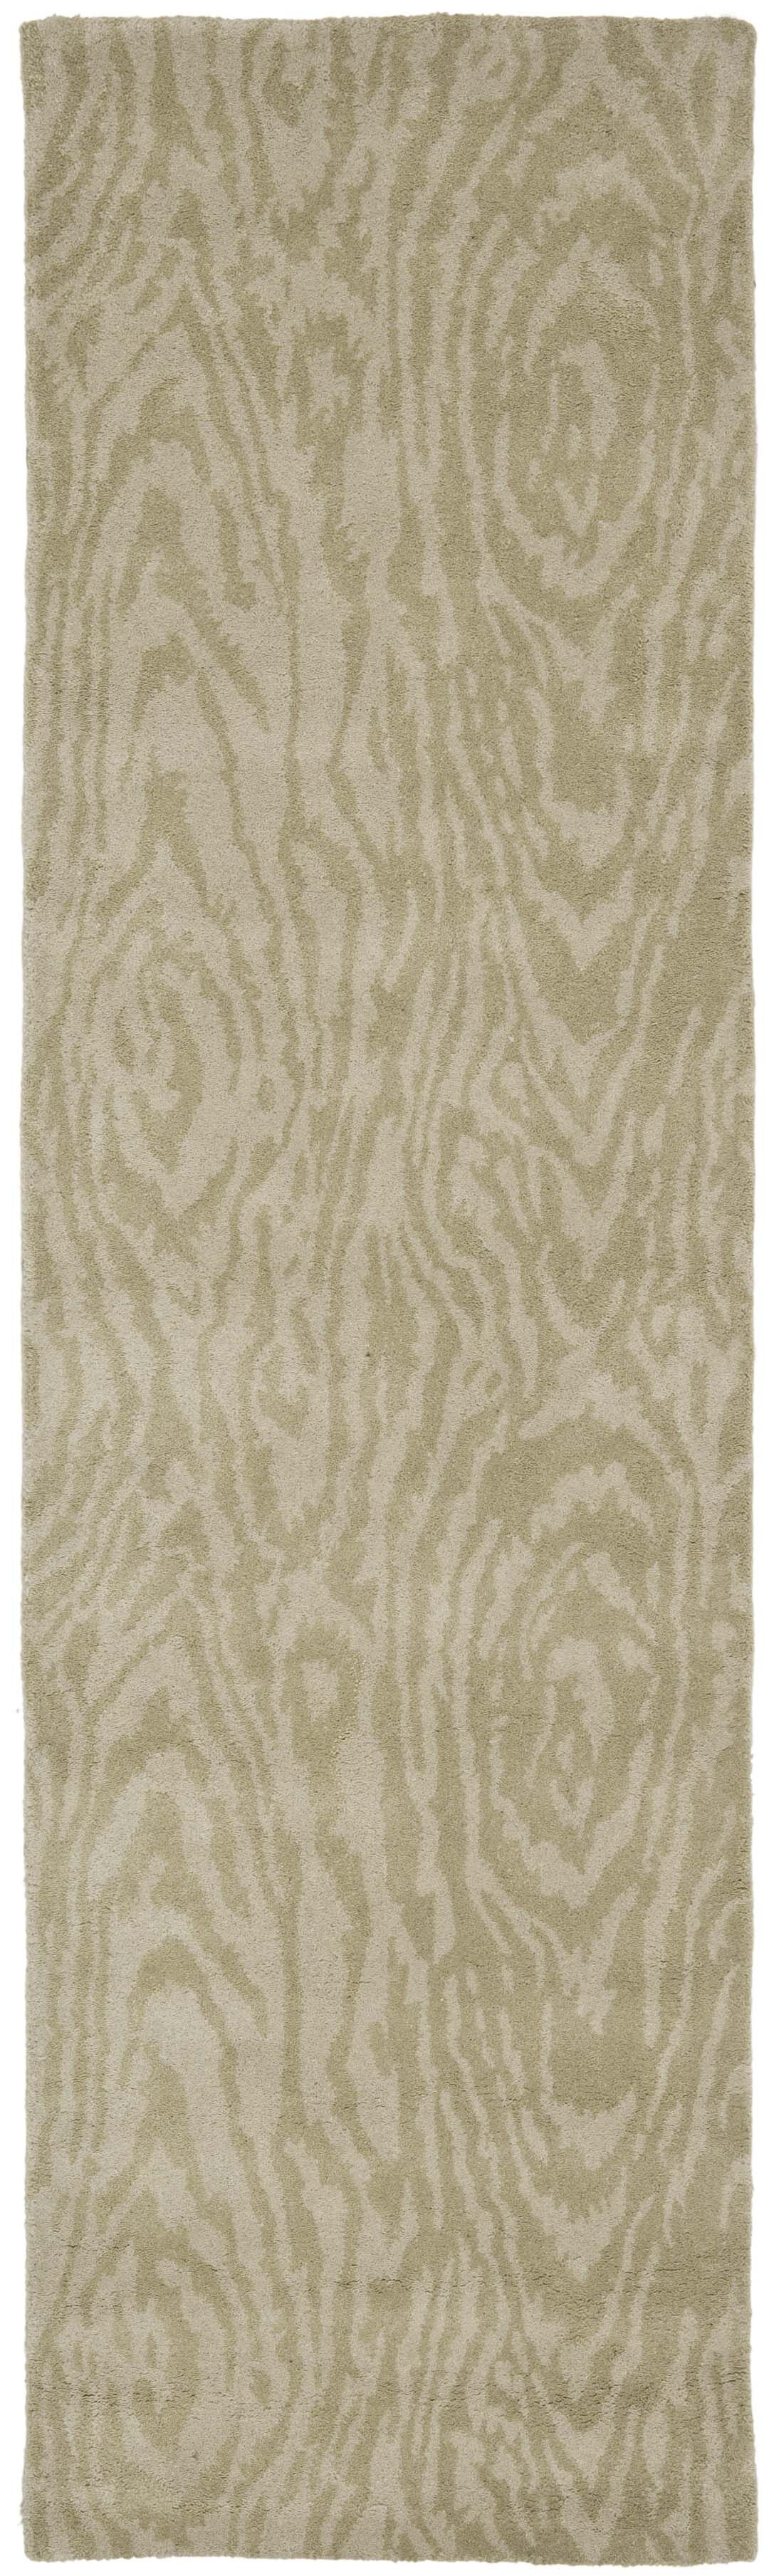 Hand-Woven Potter's Clay Area Rug Rug Size: Runner 2'3